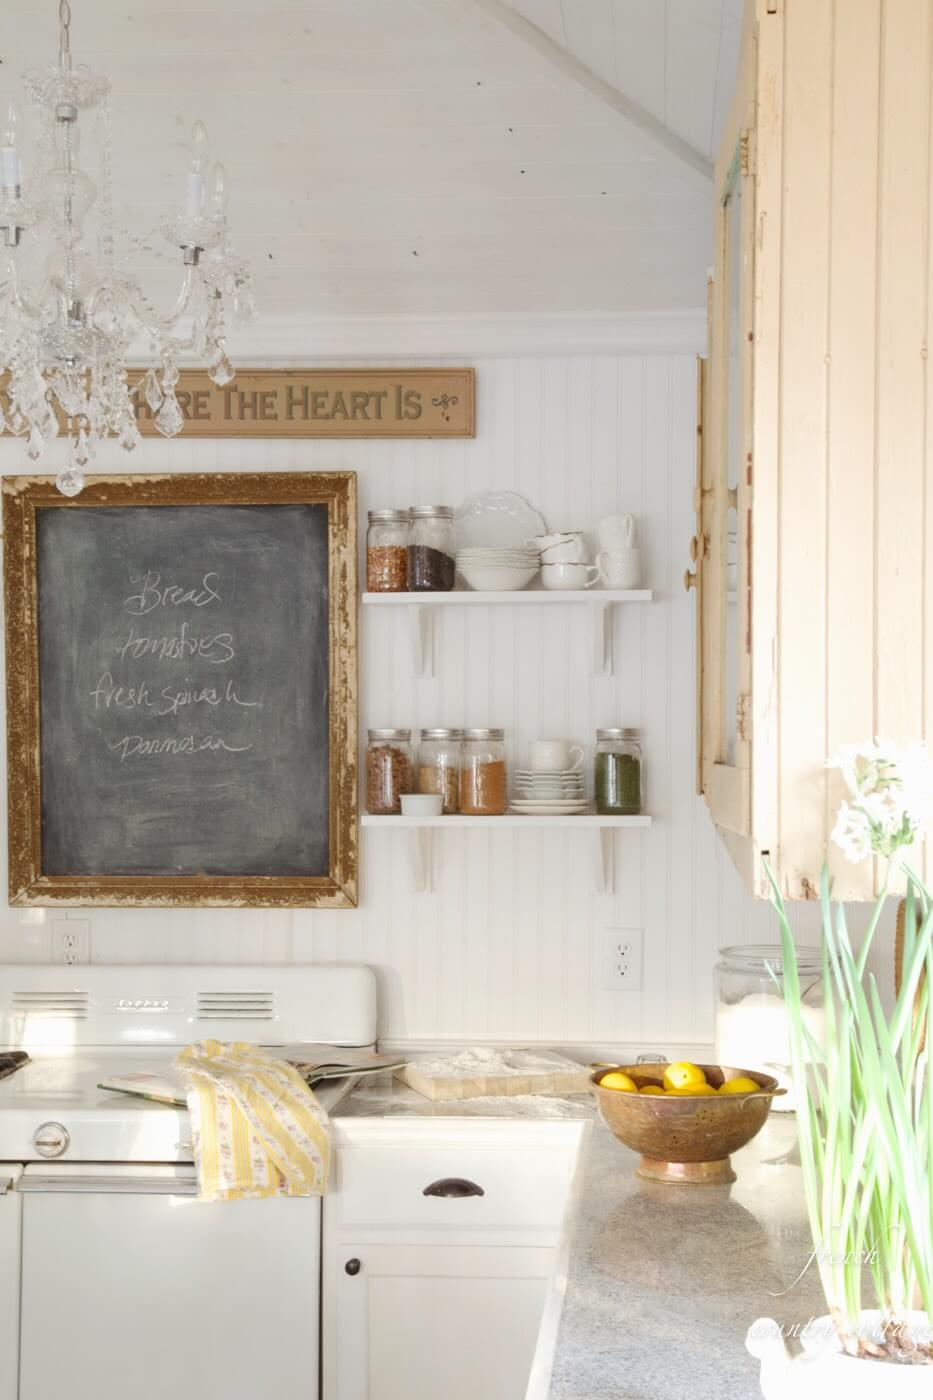 Eclectic French Kitchen with Rustic Chalkboard Sign